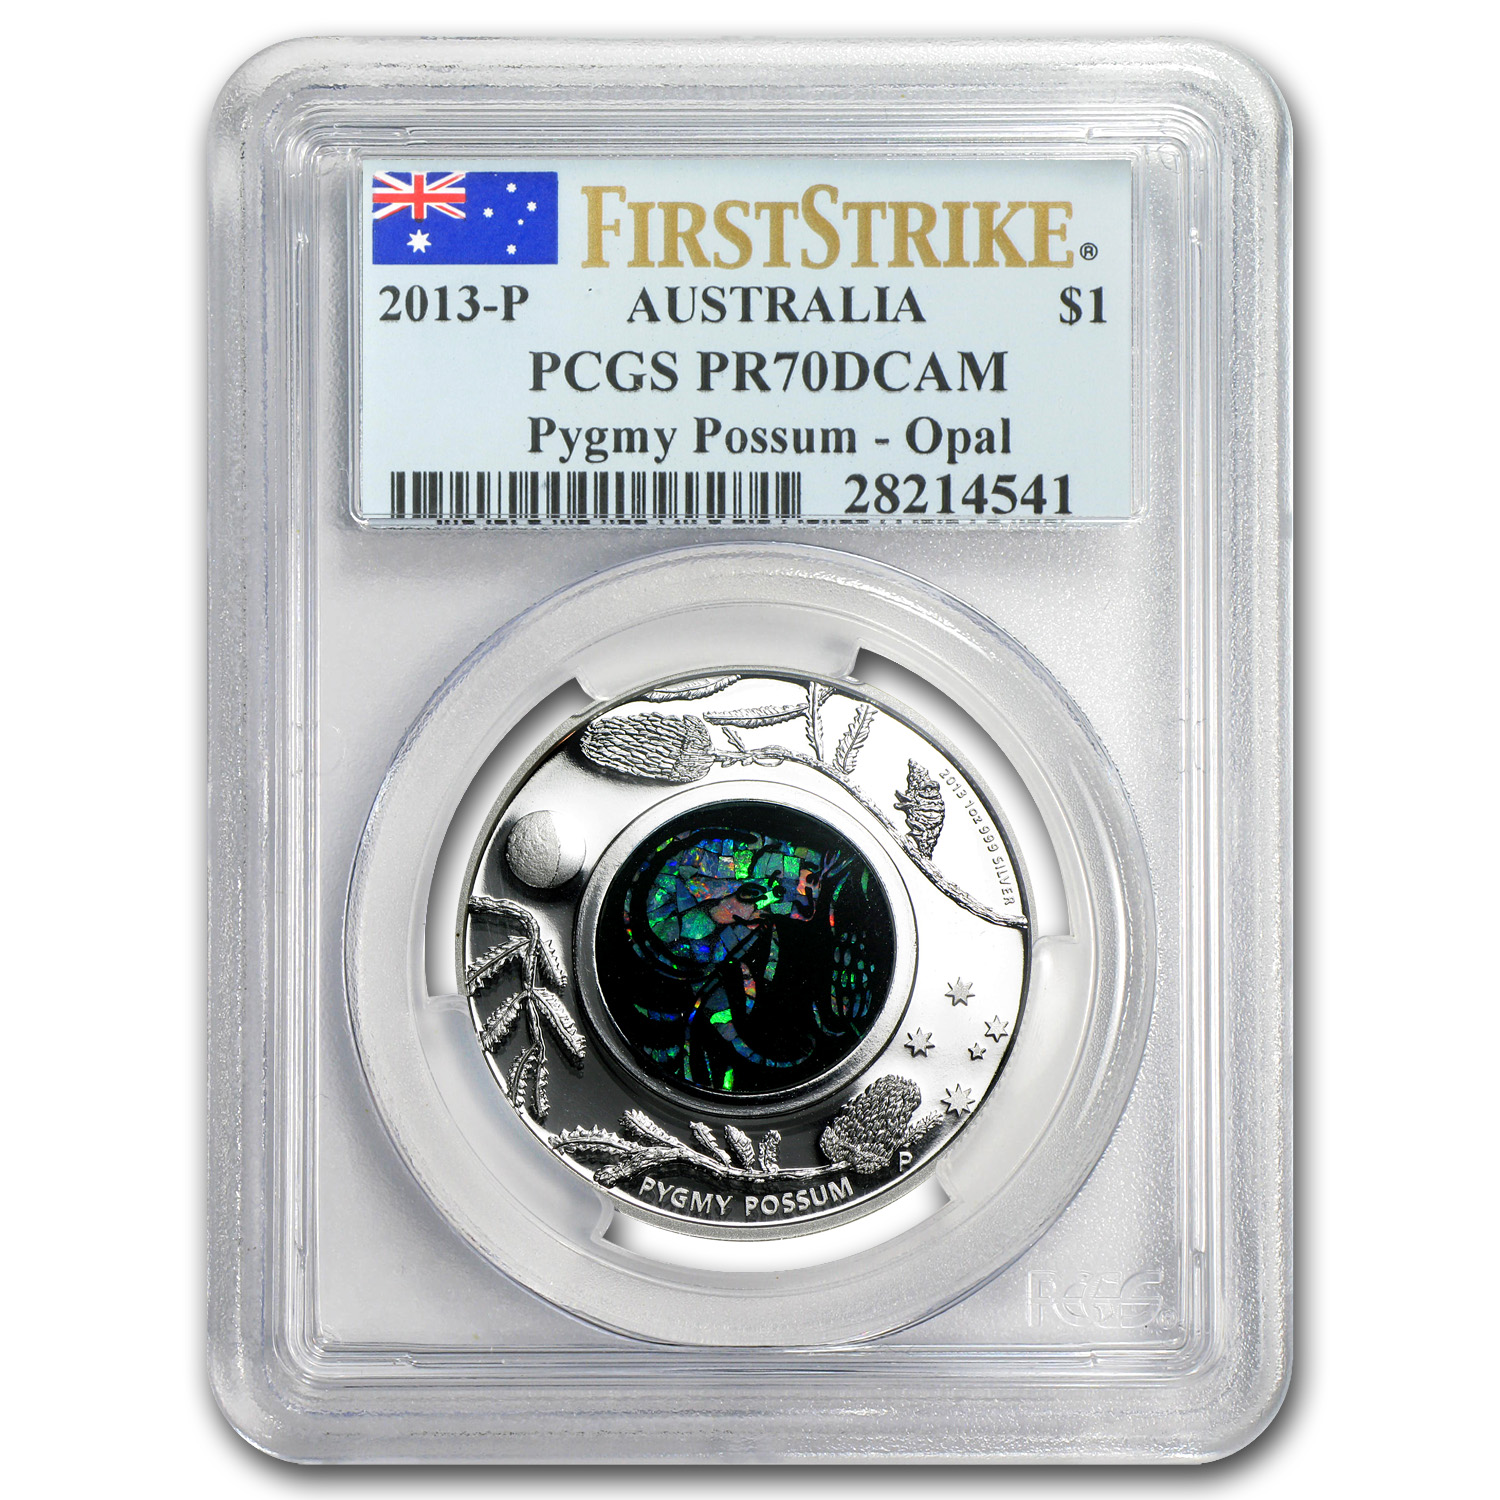 2013 1 oz Proof Silver Pygmy Possum - Opal Series PR-70 FS PCGS